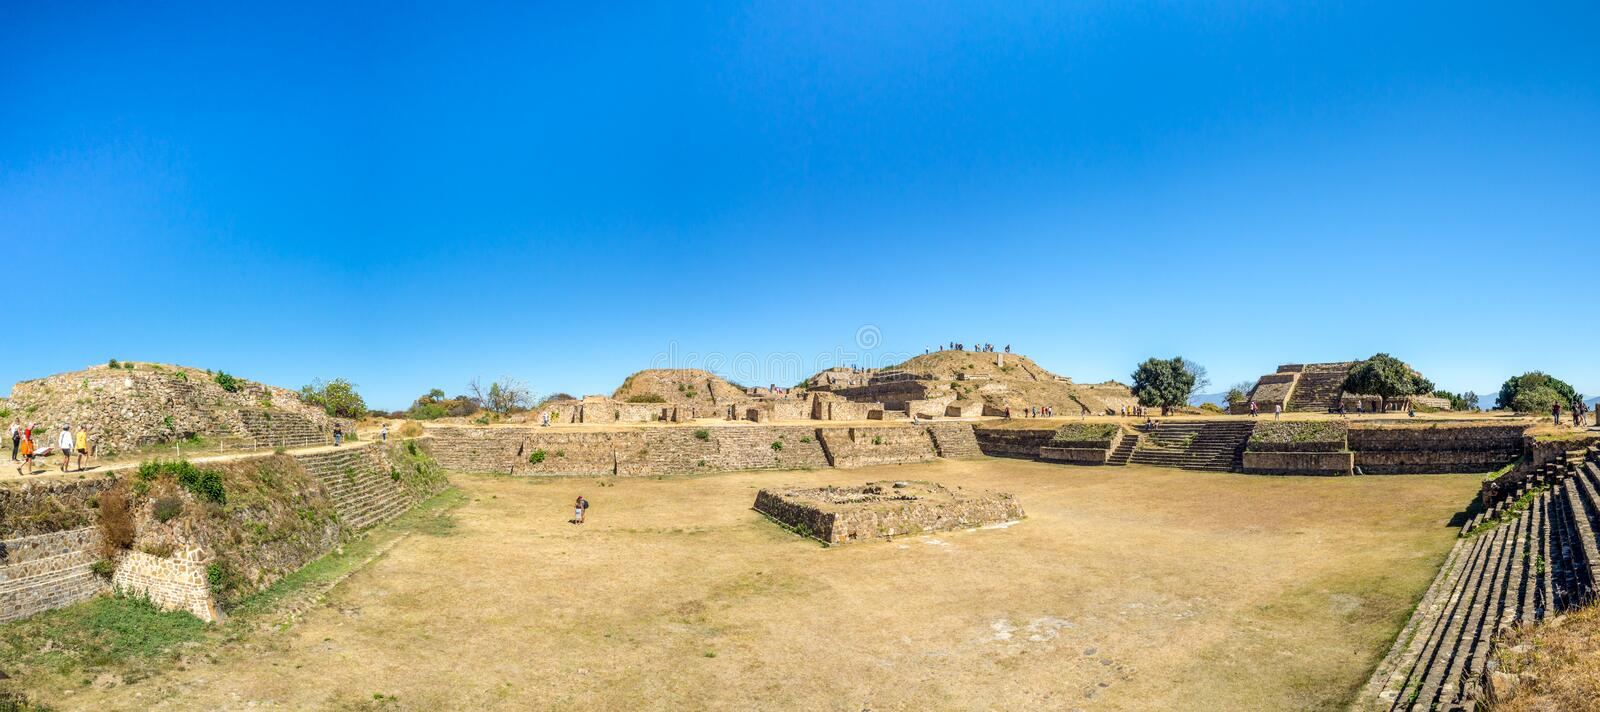 Monte Alban, Oaxaca, Mexico, South America : [Biggest ruins of ancient Zapotec city at the top of the mountain, UNES stock photos